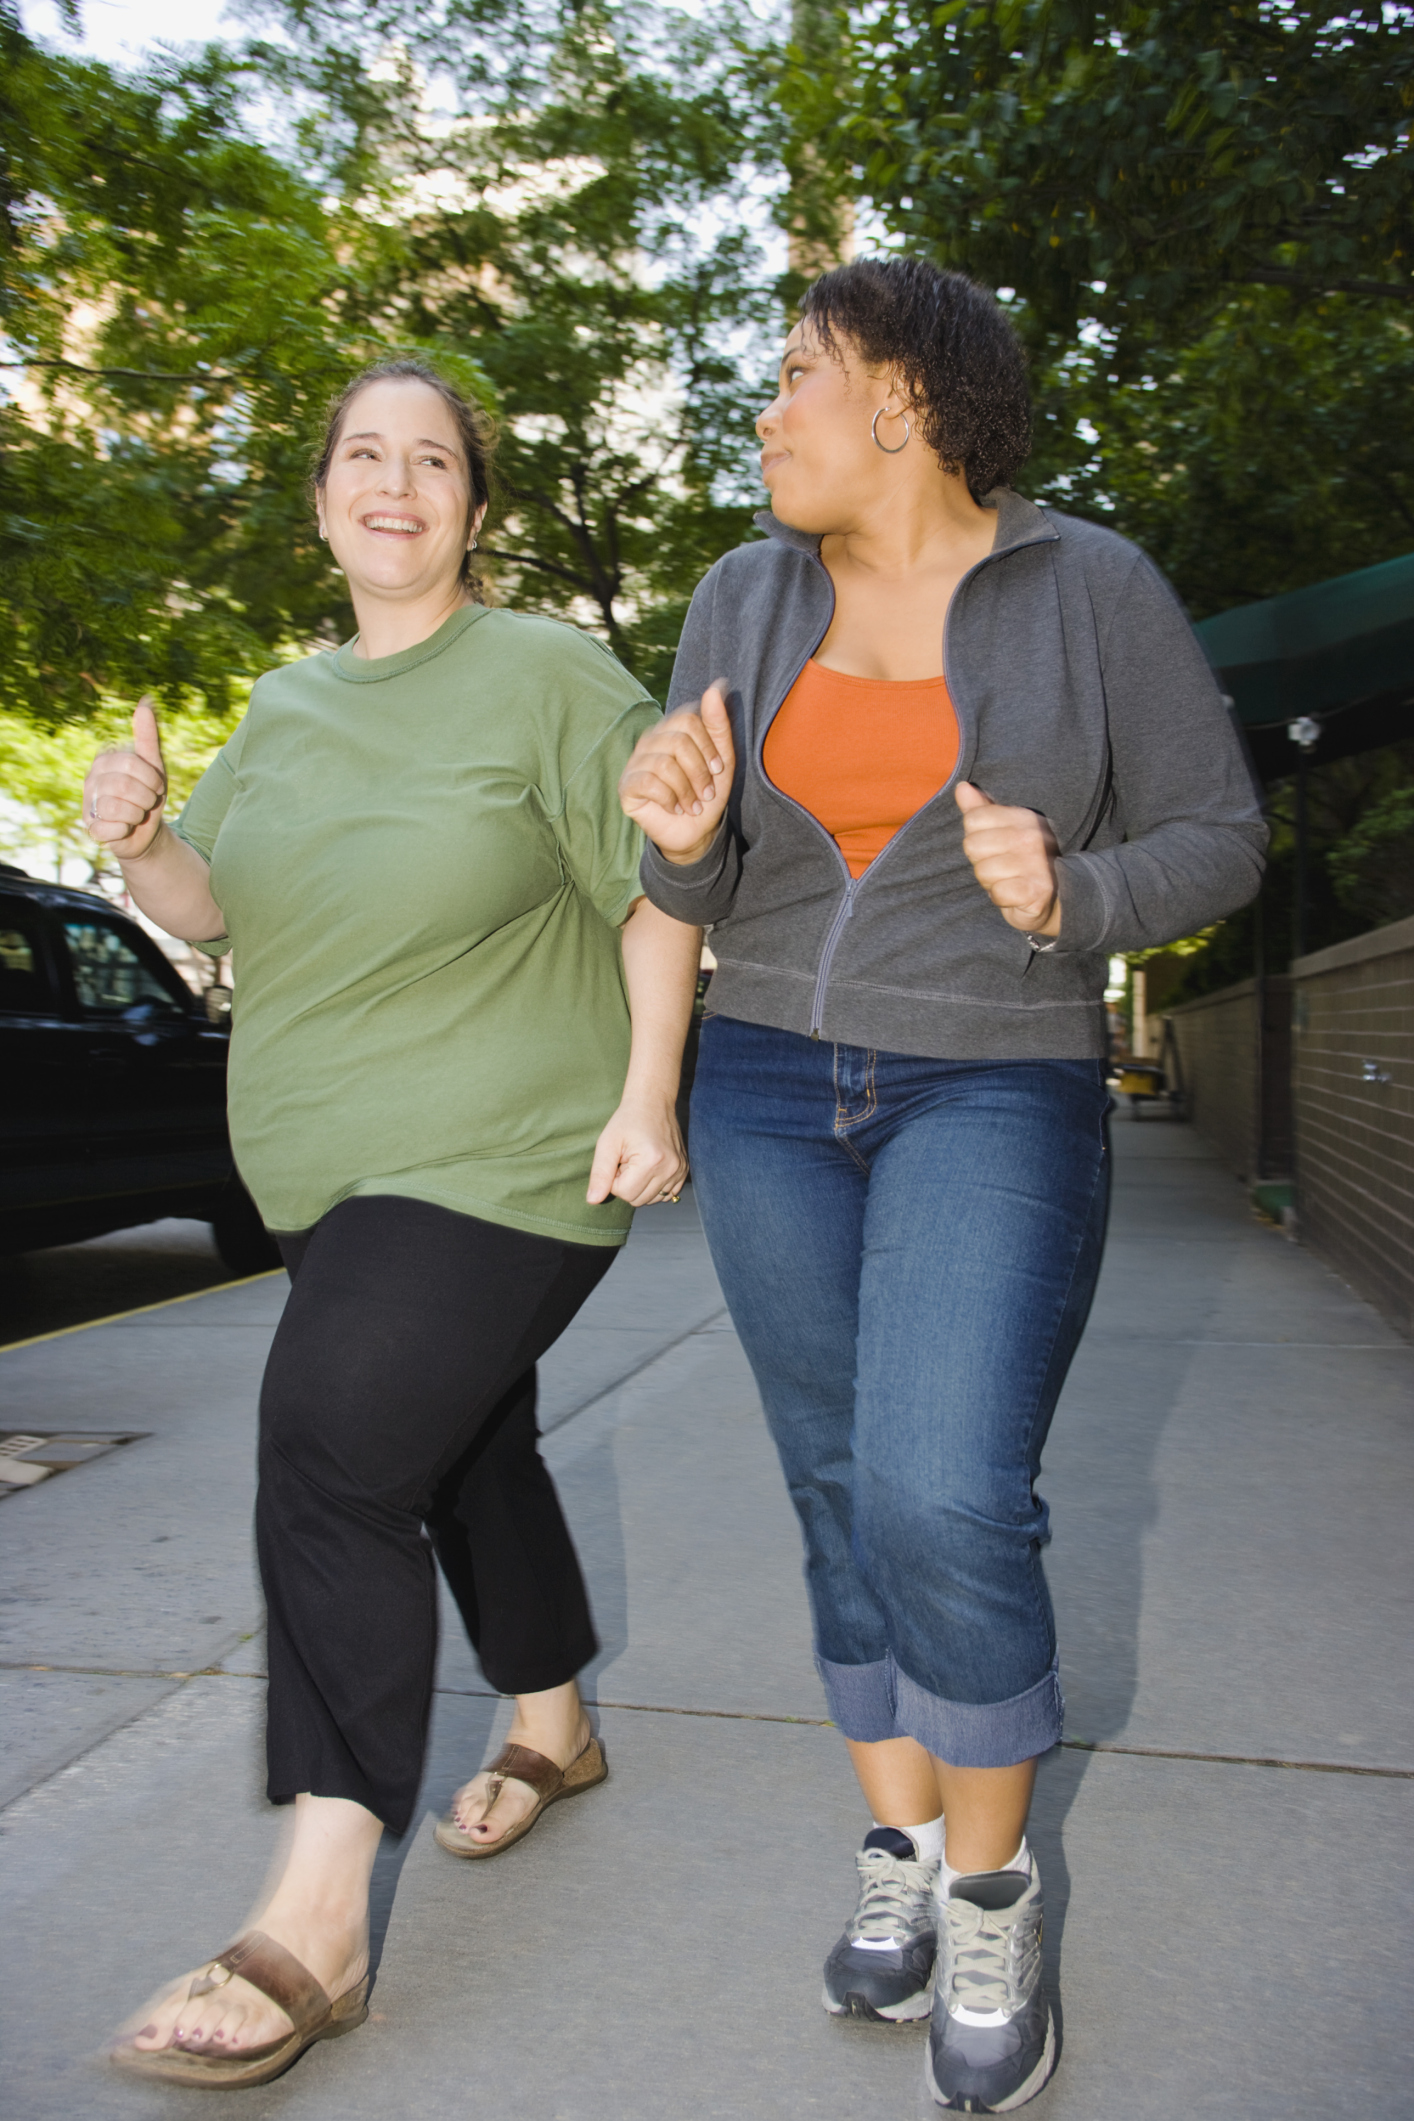 How Far to Walk to Lose 10 Pounds? | Healthy Eating | SF Gate